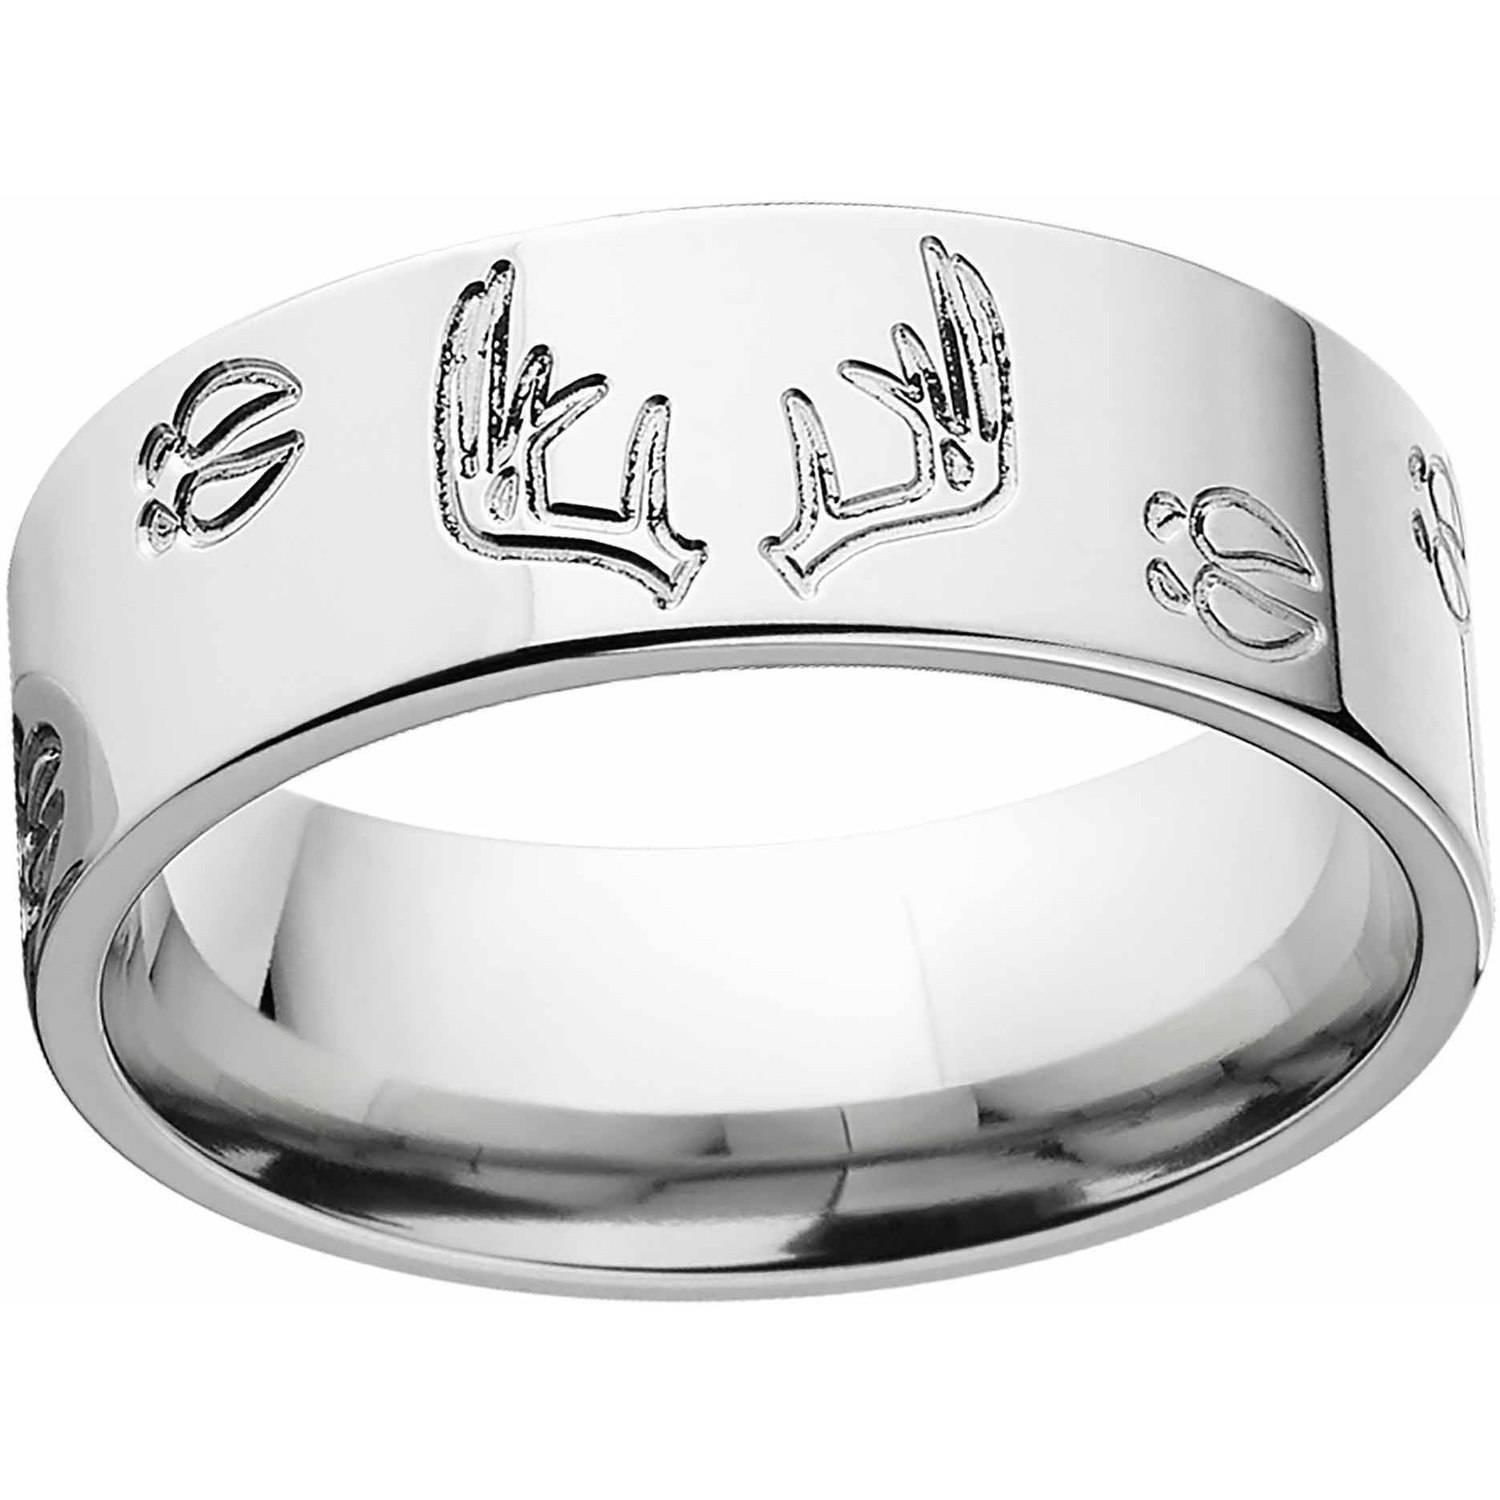 burnish rings comfort ring men eternity mens tq diamond w set fit bands s wedding white stone gold